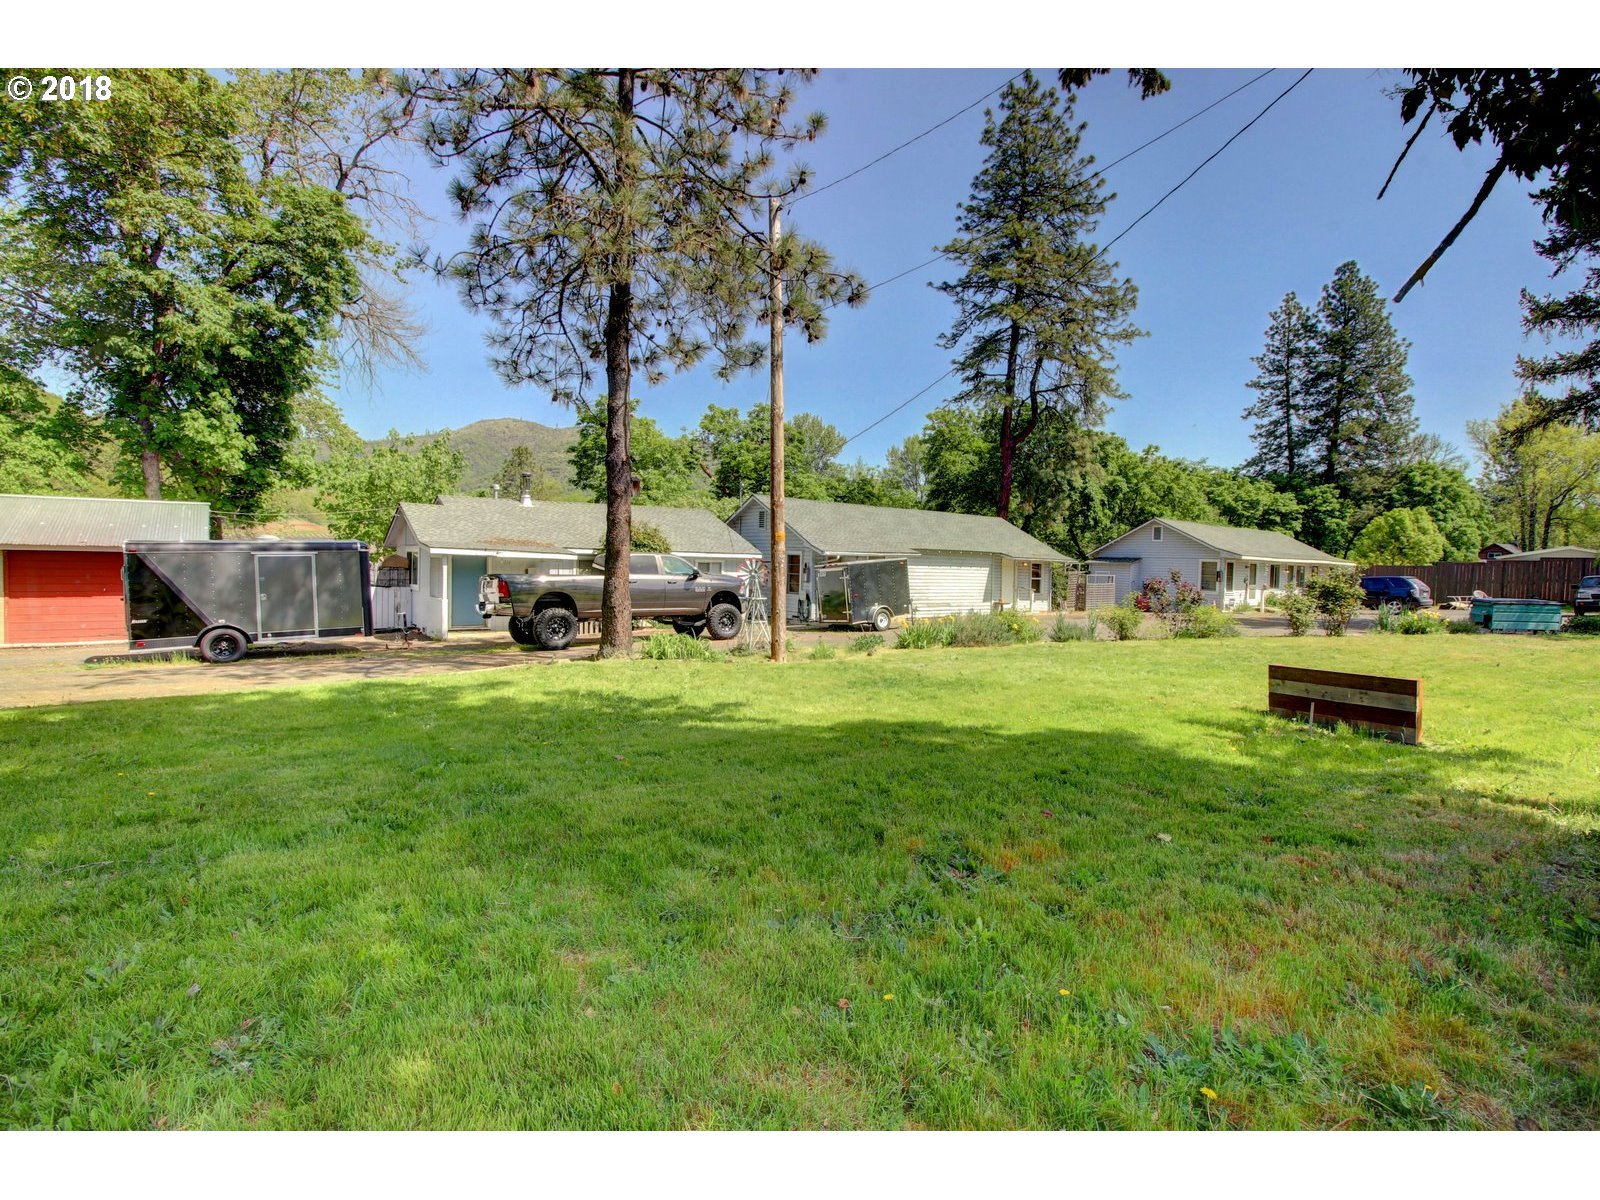 Grants Pass, OR  Bedroom Home For Sale